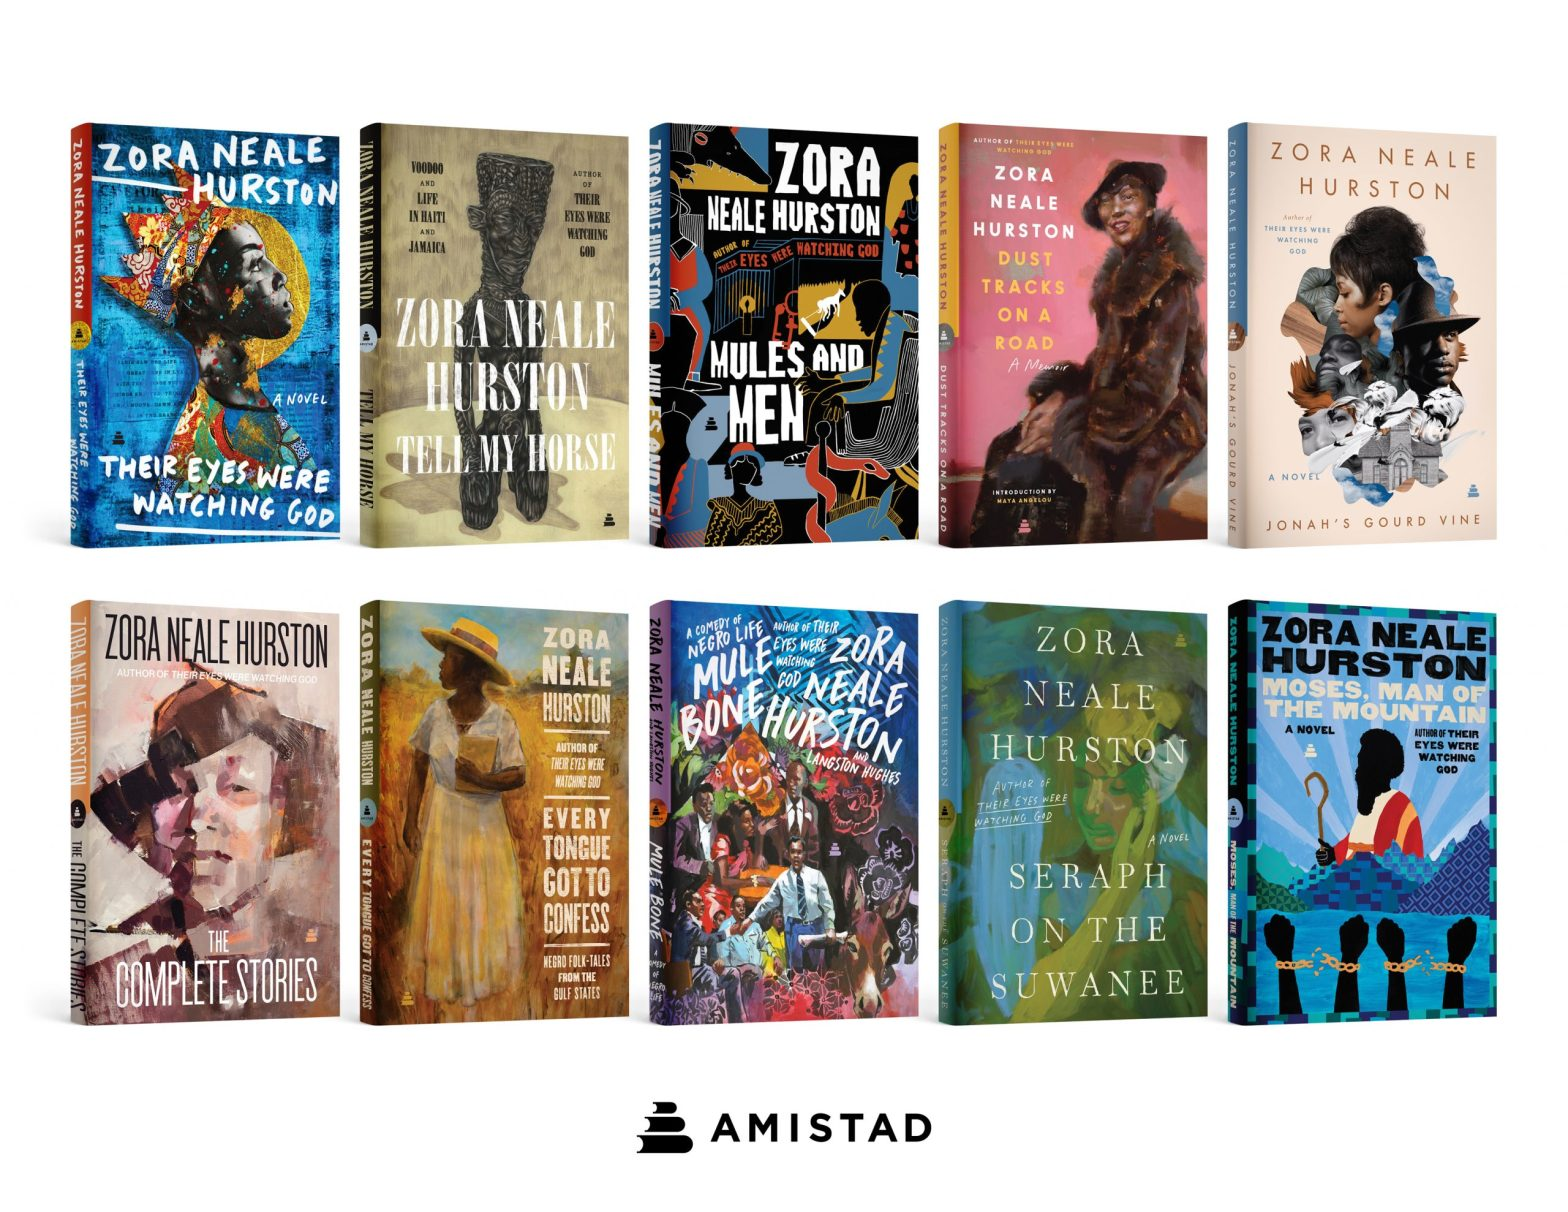 Thumbnail for Zora Neale Hurston's Beloved Works Get Beautifully Repackaged By Amistad Books